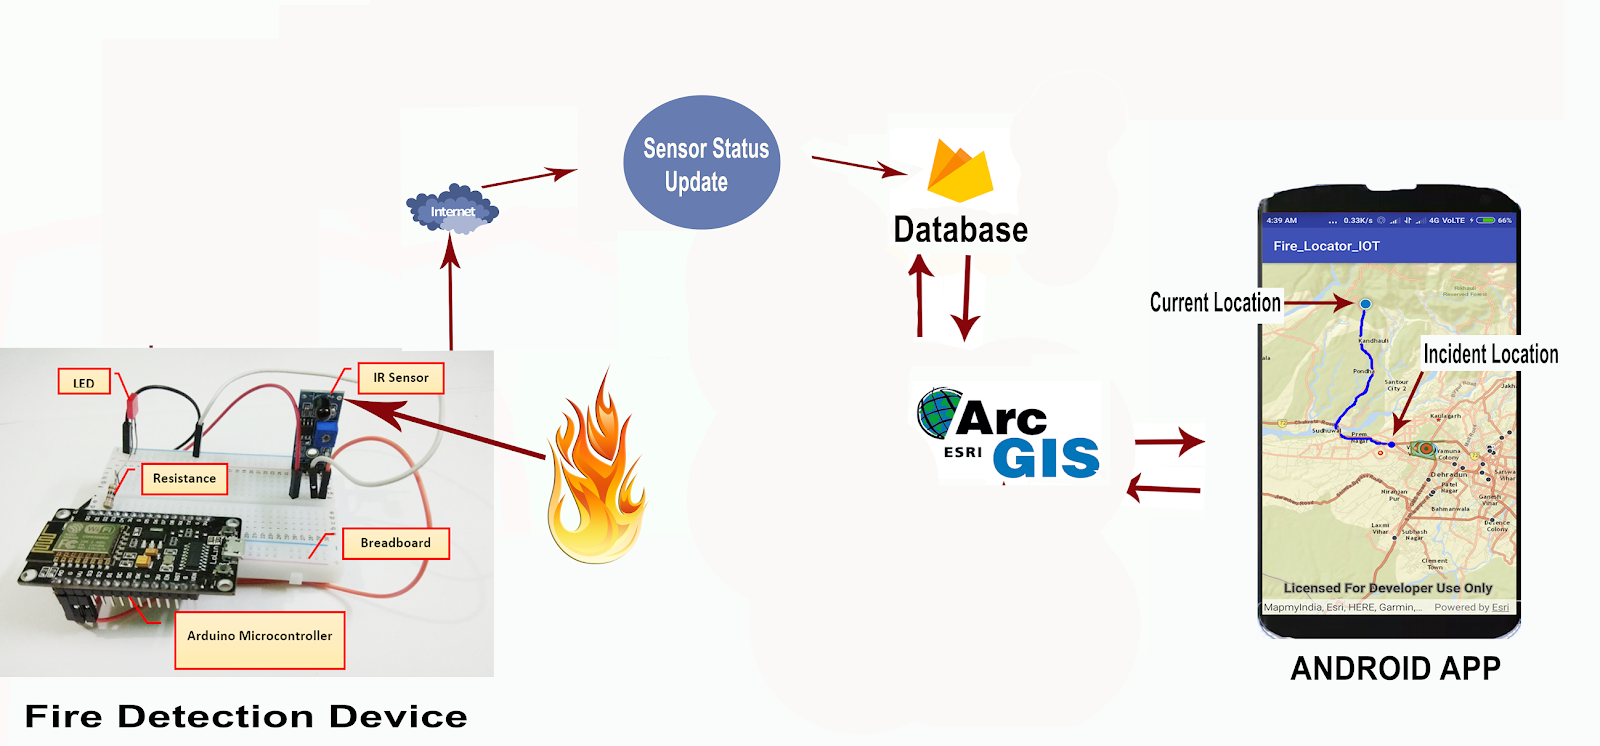 IOT ARCGIS Project ESRI : Fire Detection Alert with Incident